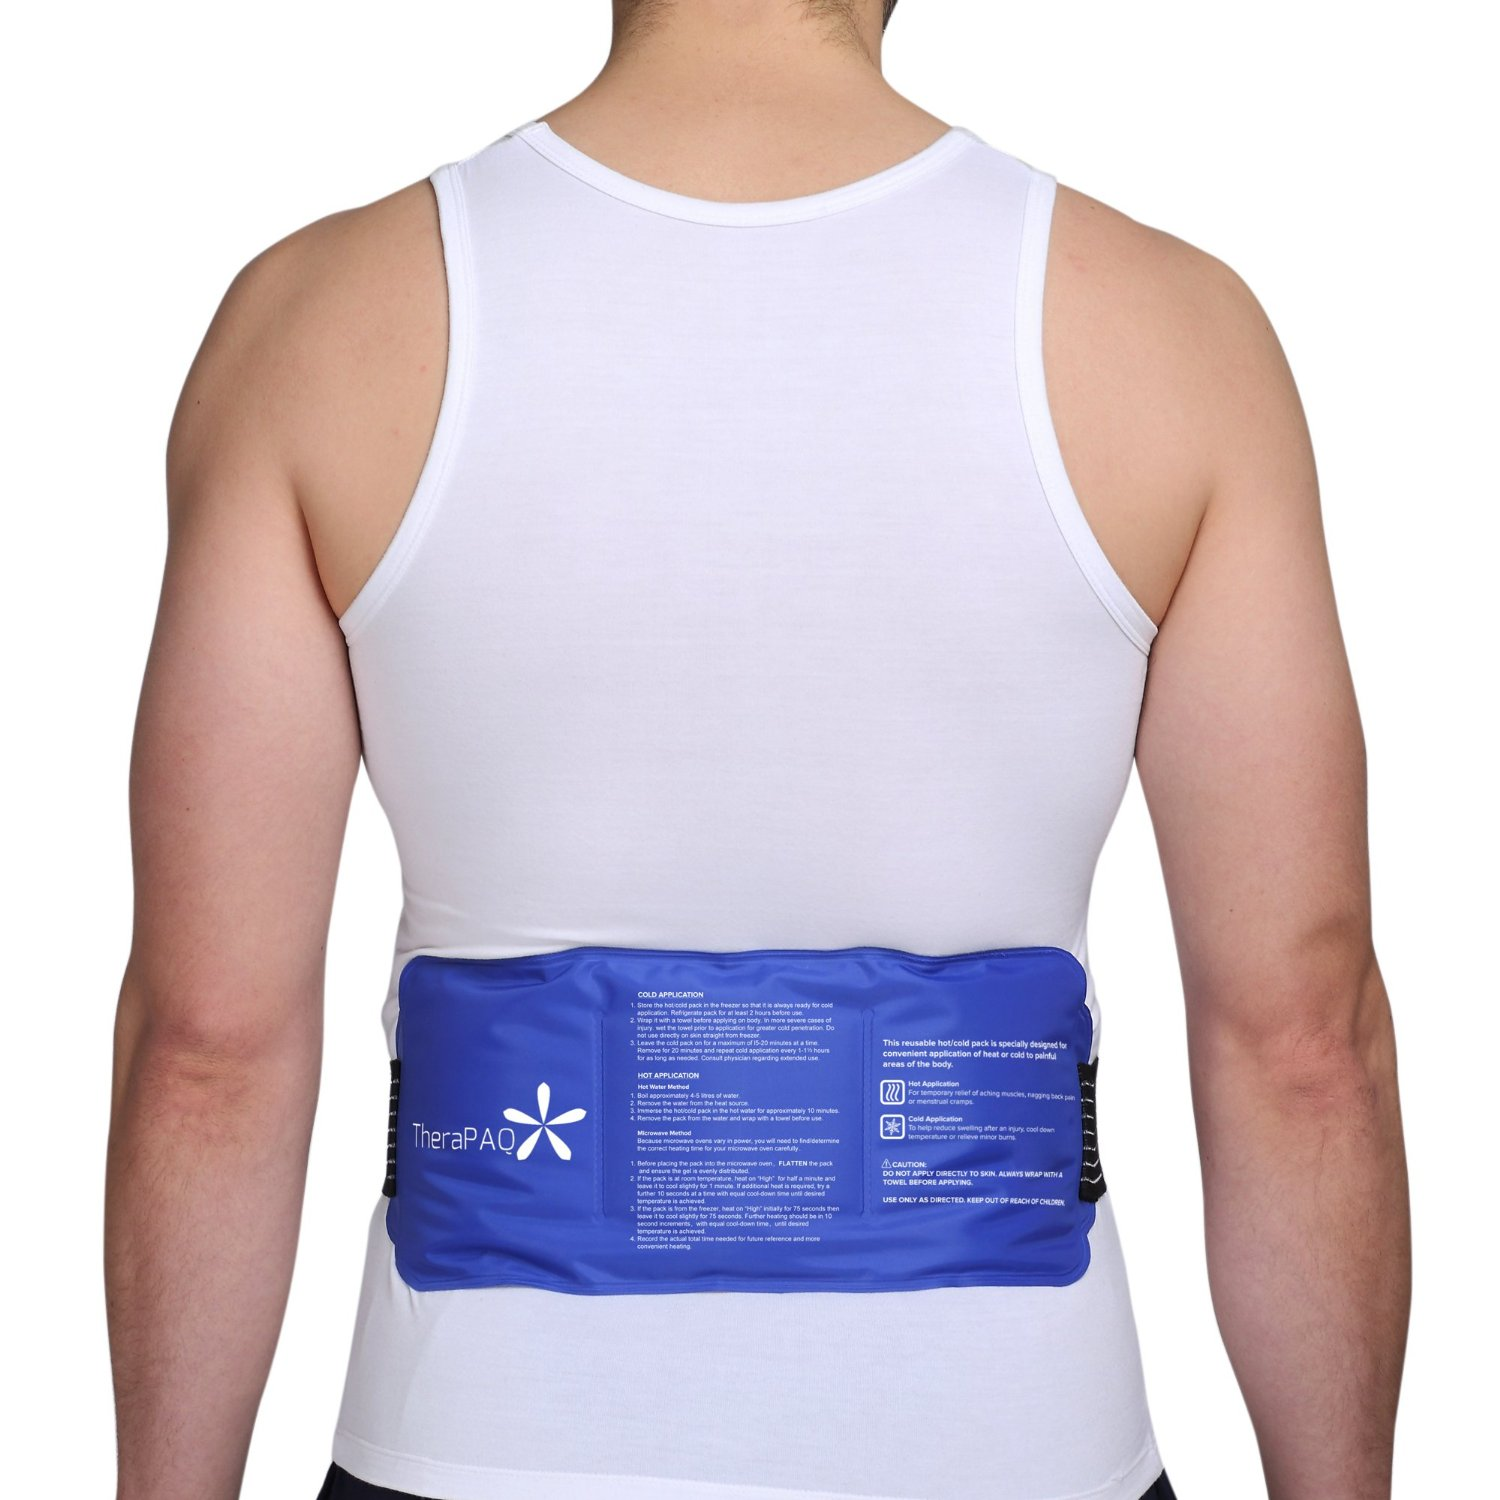 Ảnh: Relieve neck and back pain